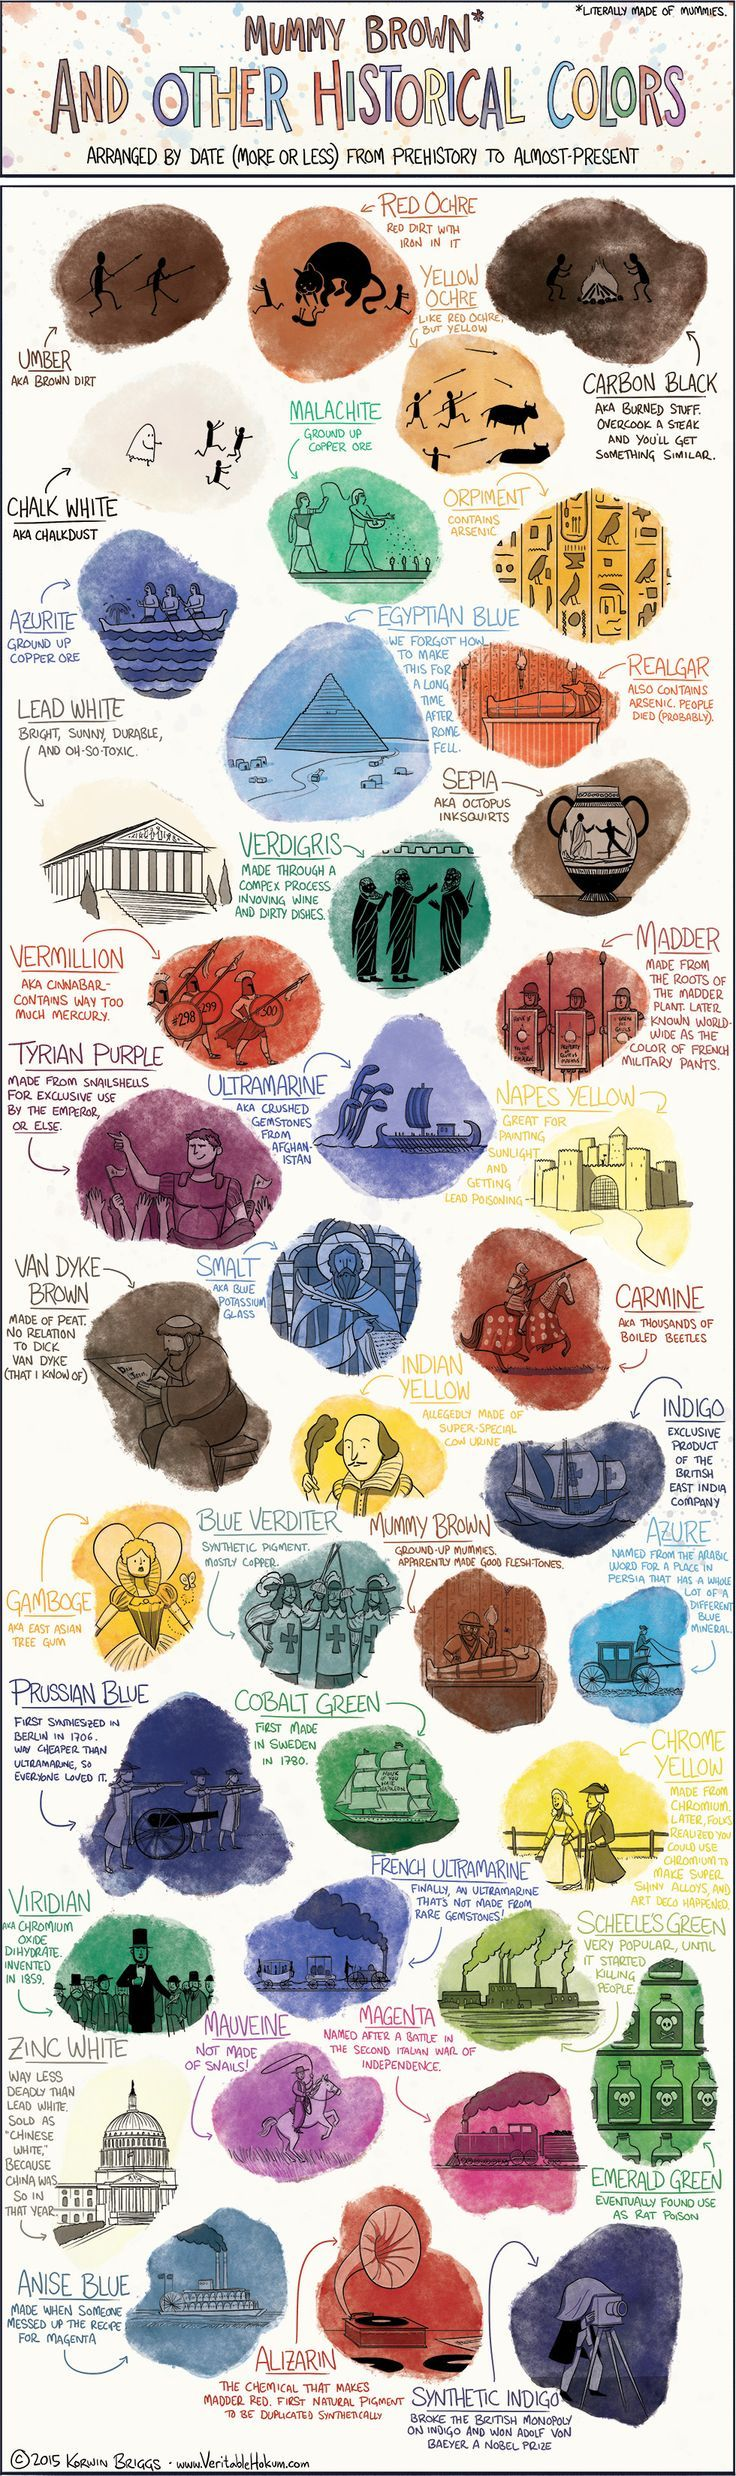 The Strange History of Natural Pigments - where does our concept of color come from?